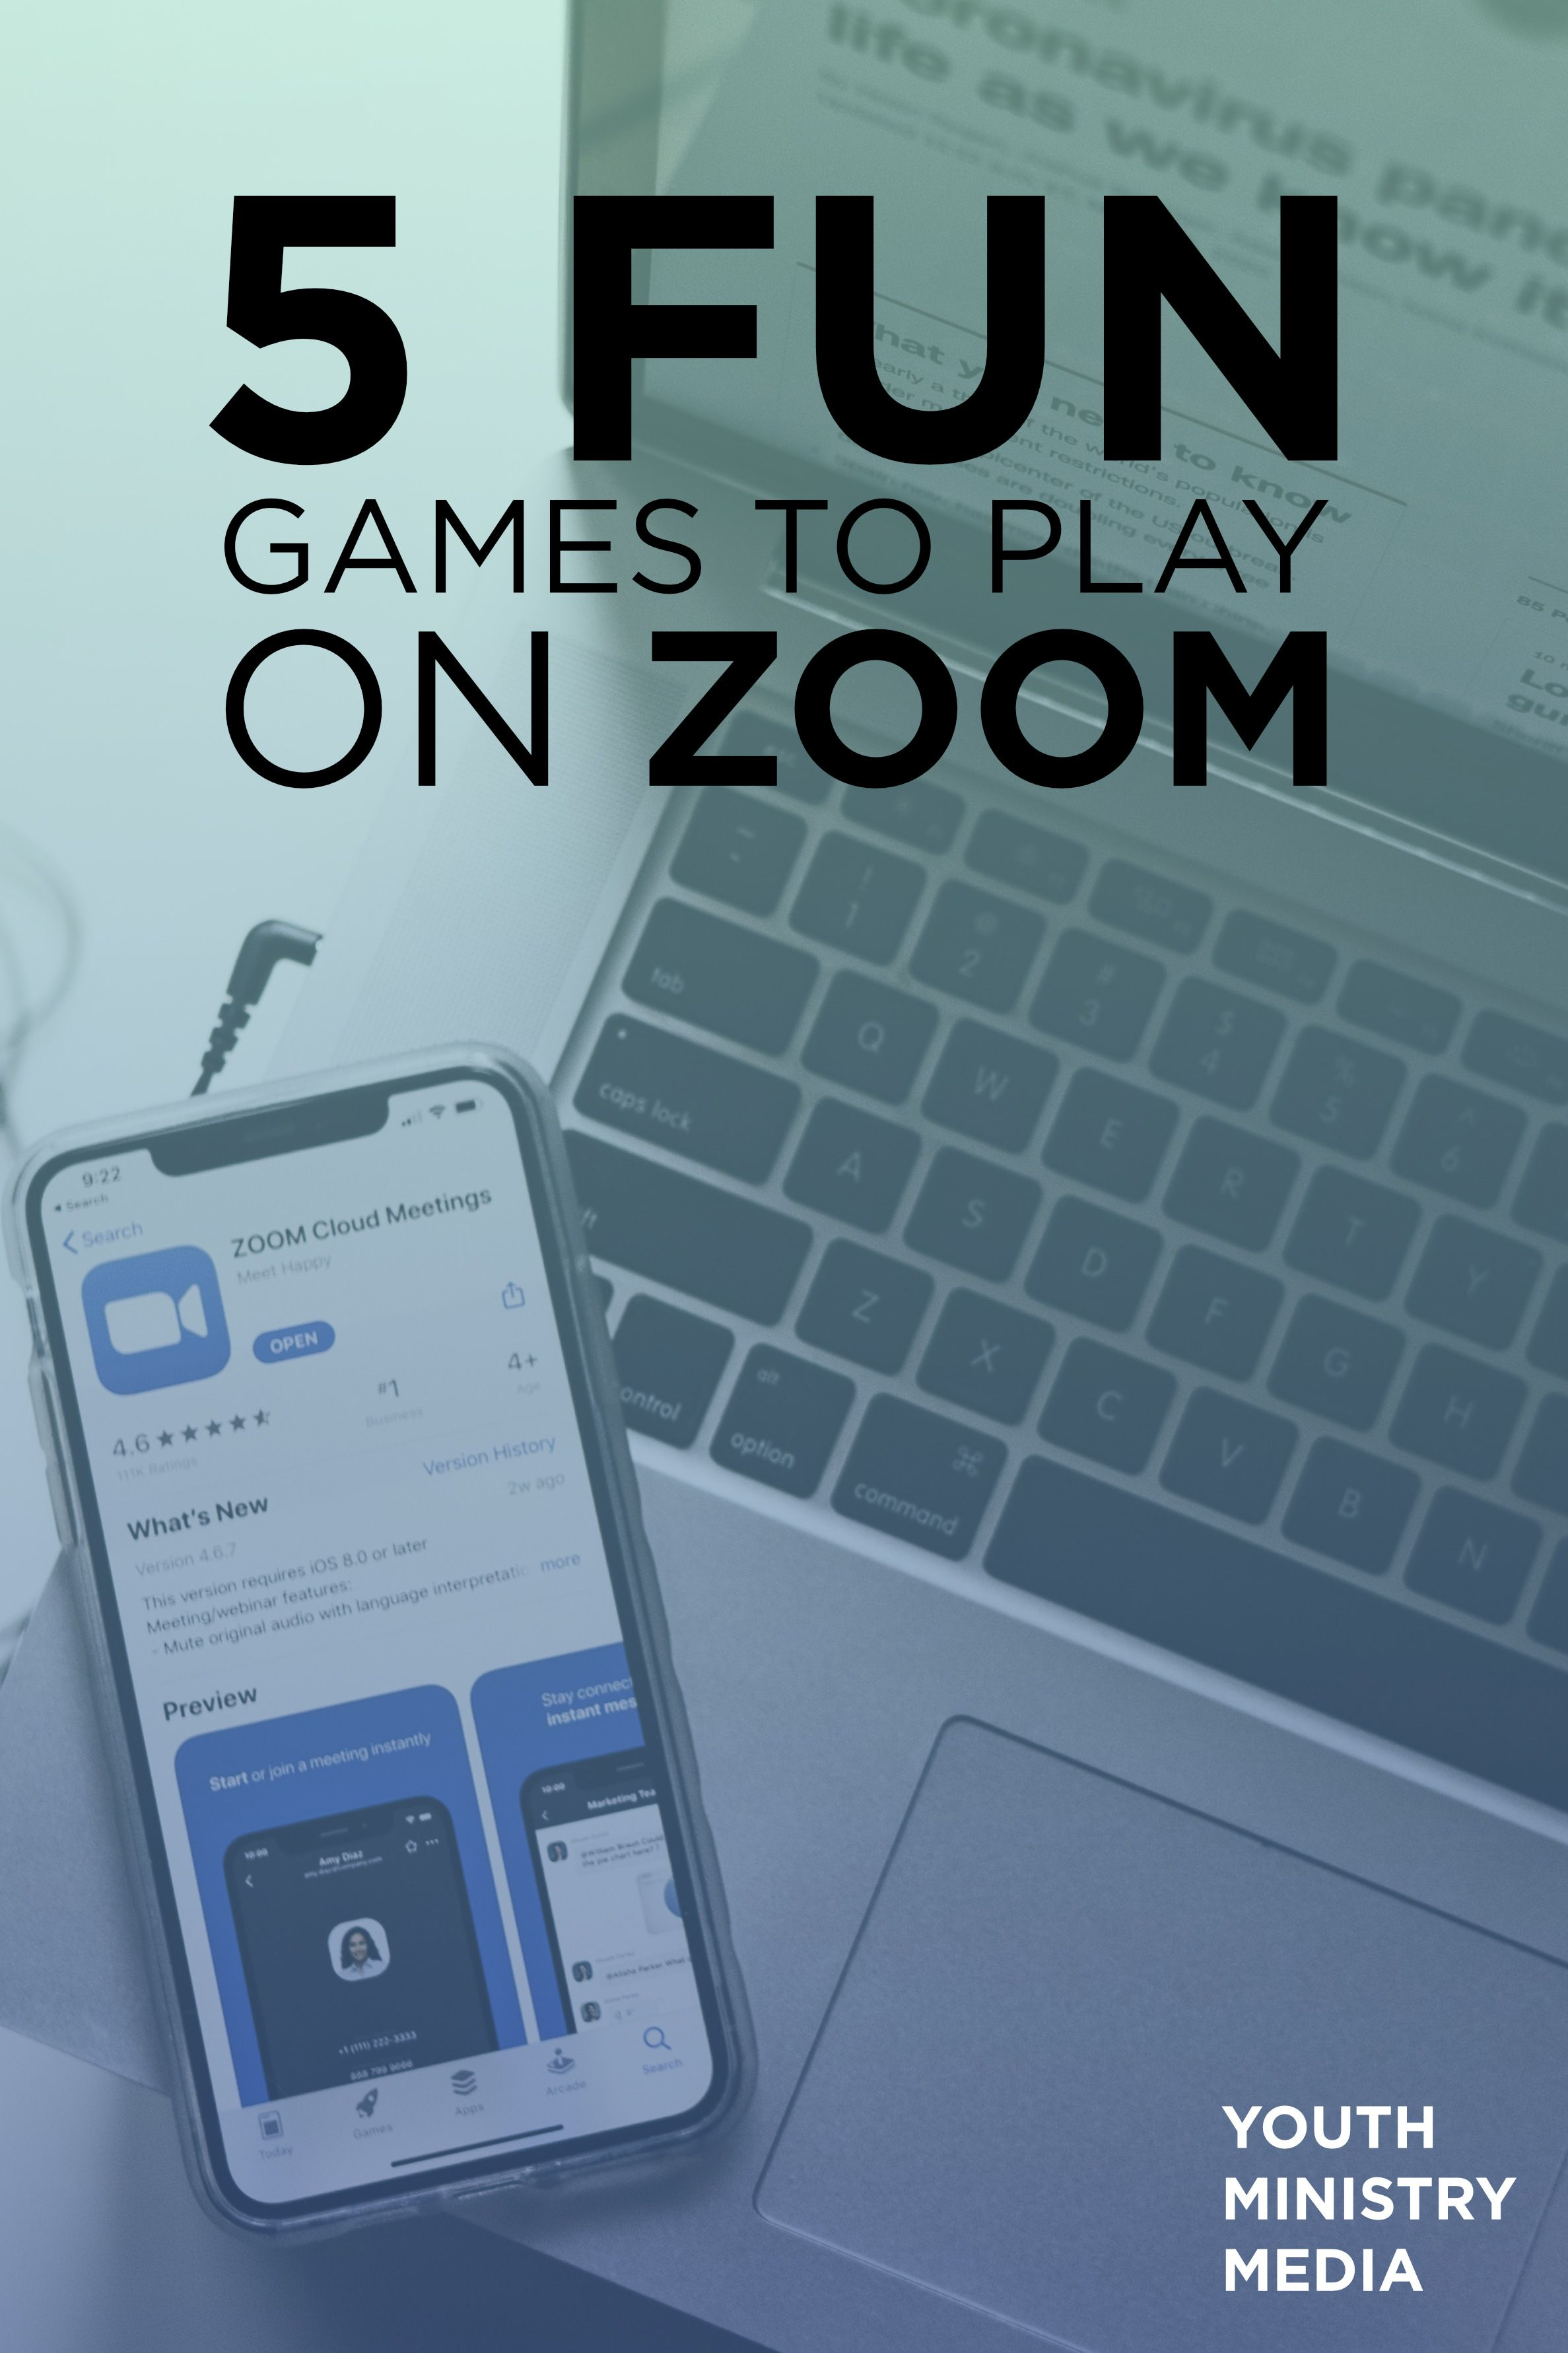 5 Fun Zoom Games To Play With Your Youth Ministry In 2020 Youth Ministry Games Youth Ministry Youth Games